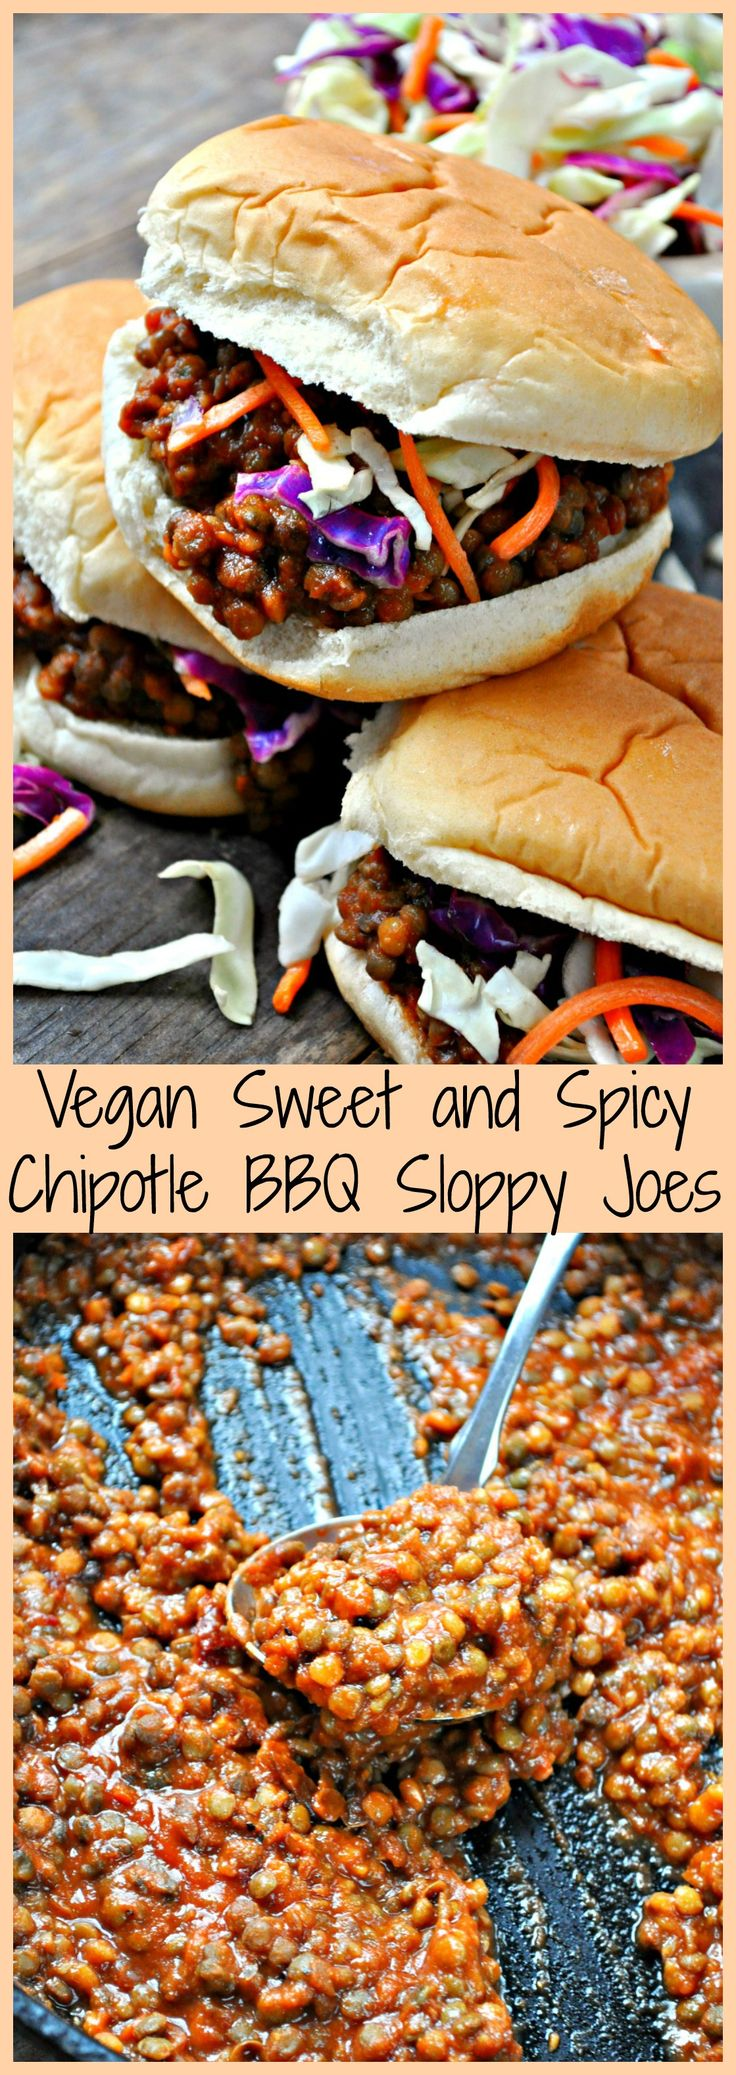 Lentils drenched in sweet and spicy chipotle BBQ sauce makes the best sloppy joes of all time! Plant based, refined sugar free BBQ sauce, and so awesome!